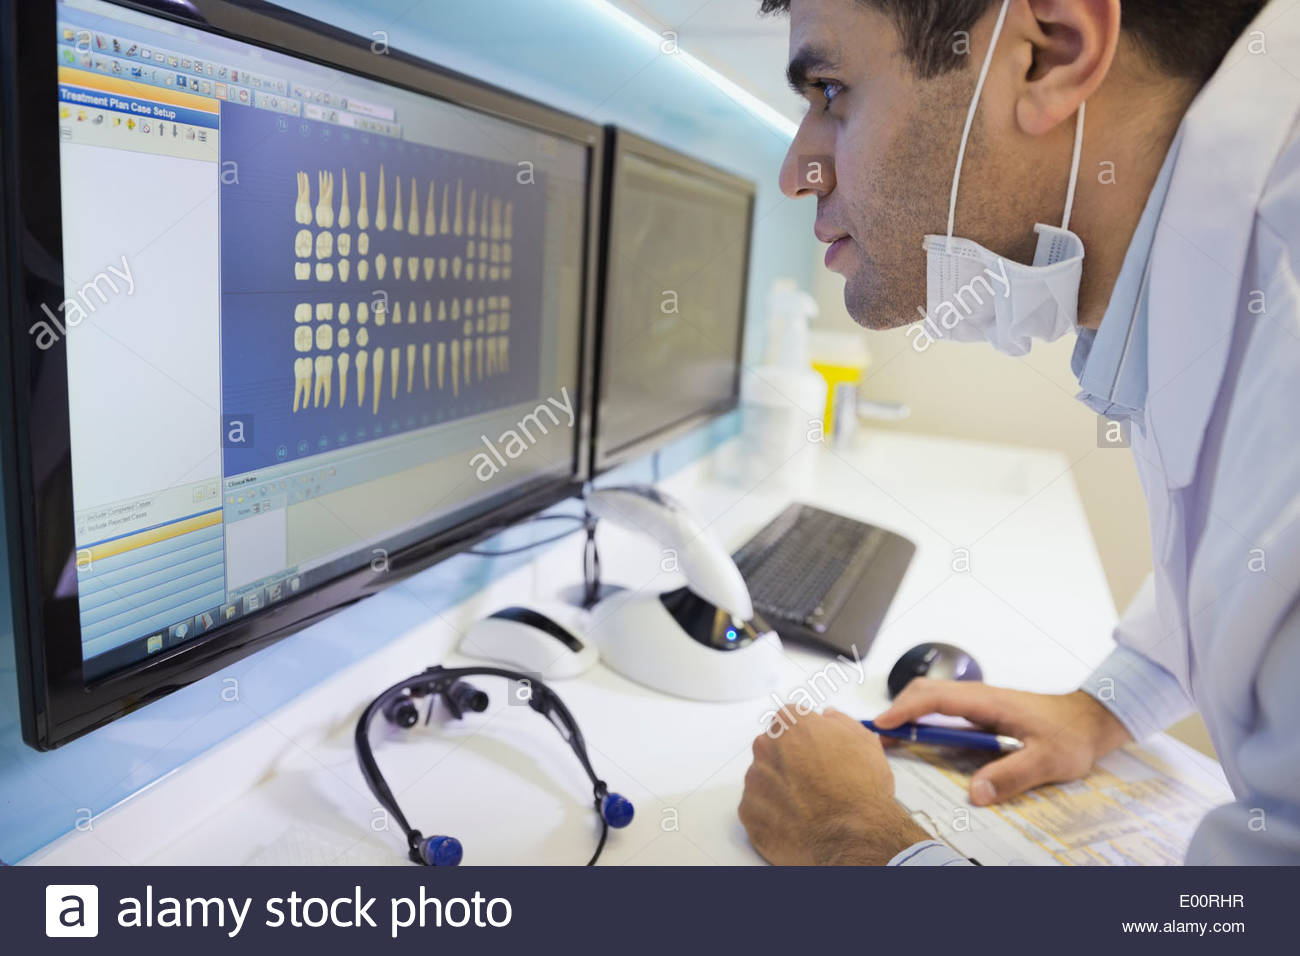 Dentist leaning in to examine tooth x-rays - Stock Image